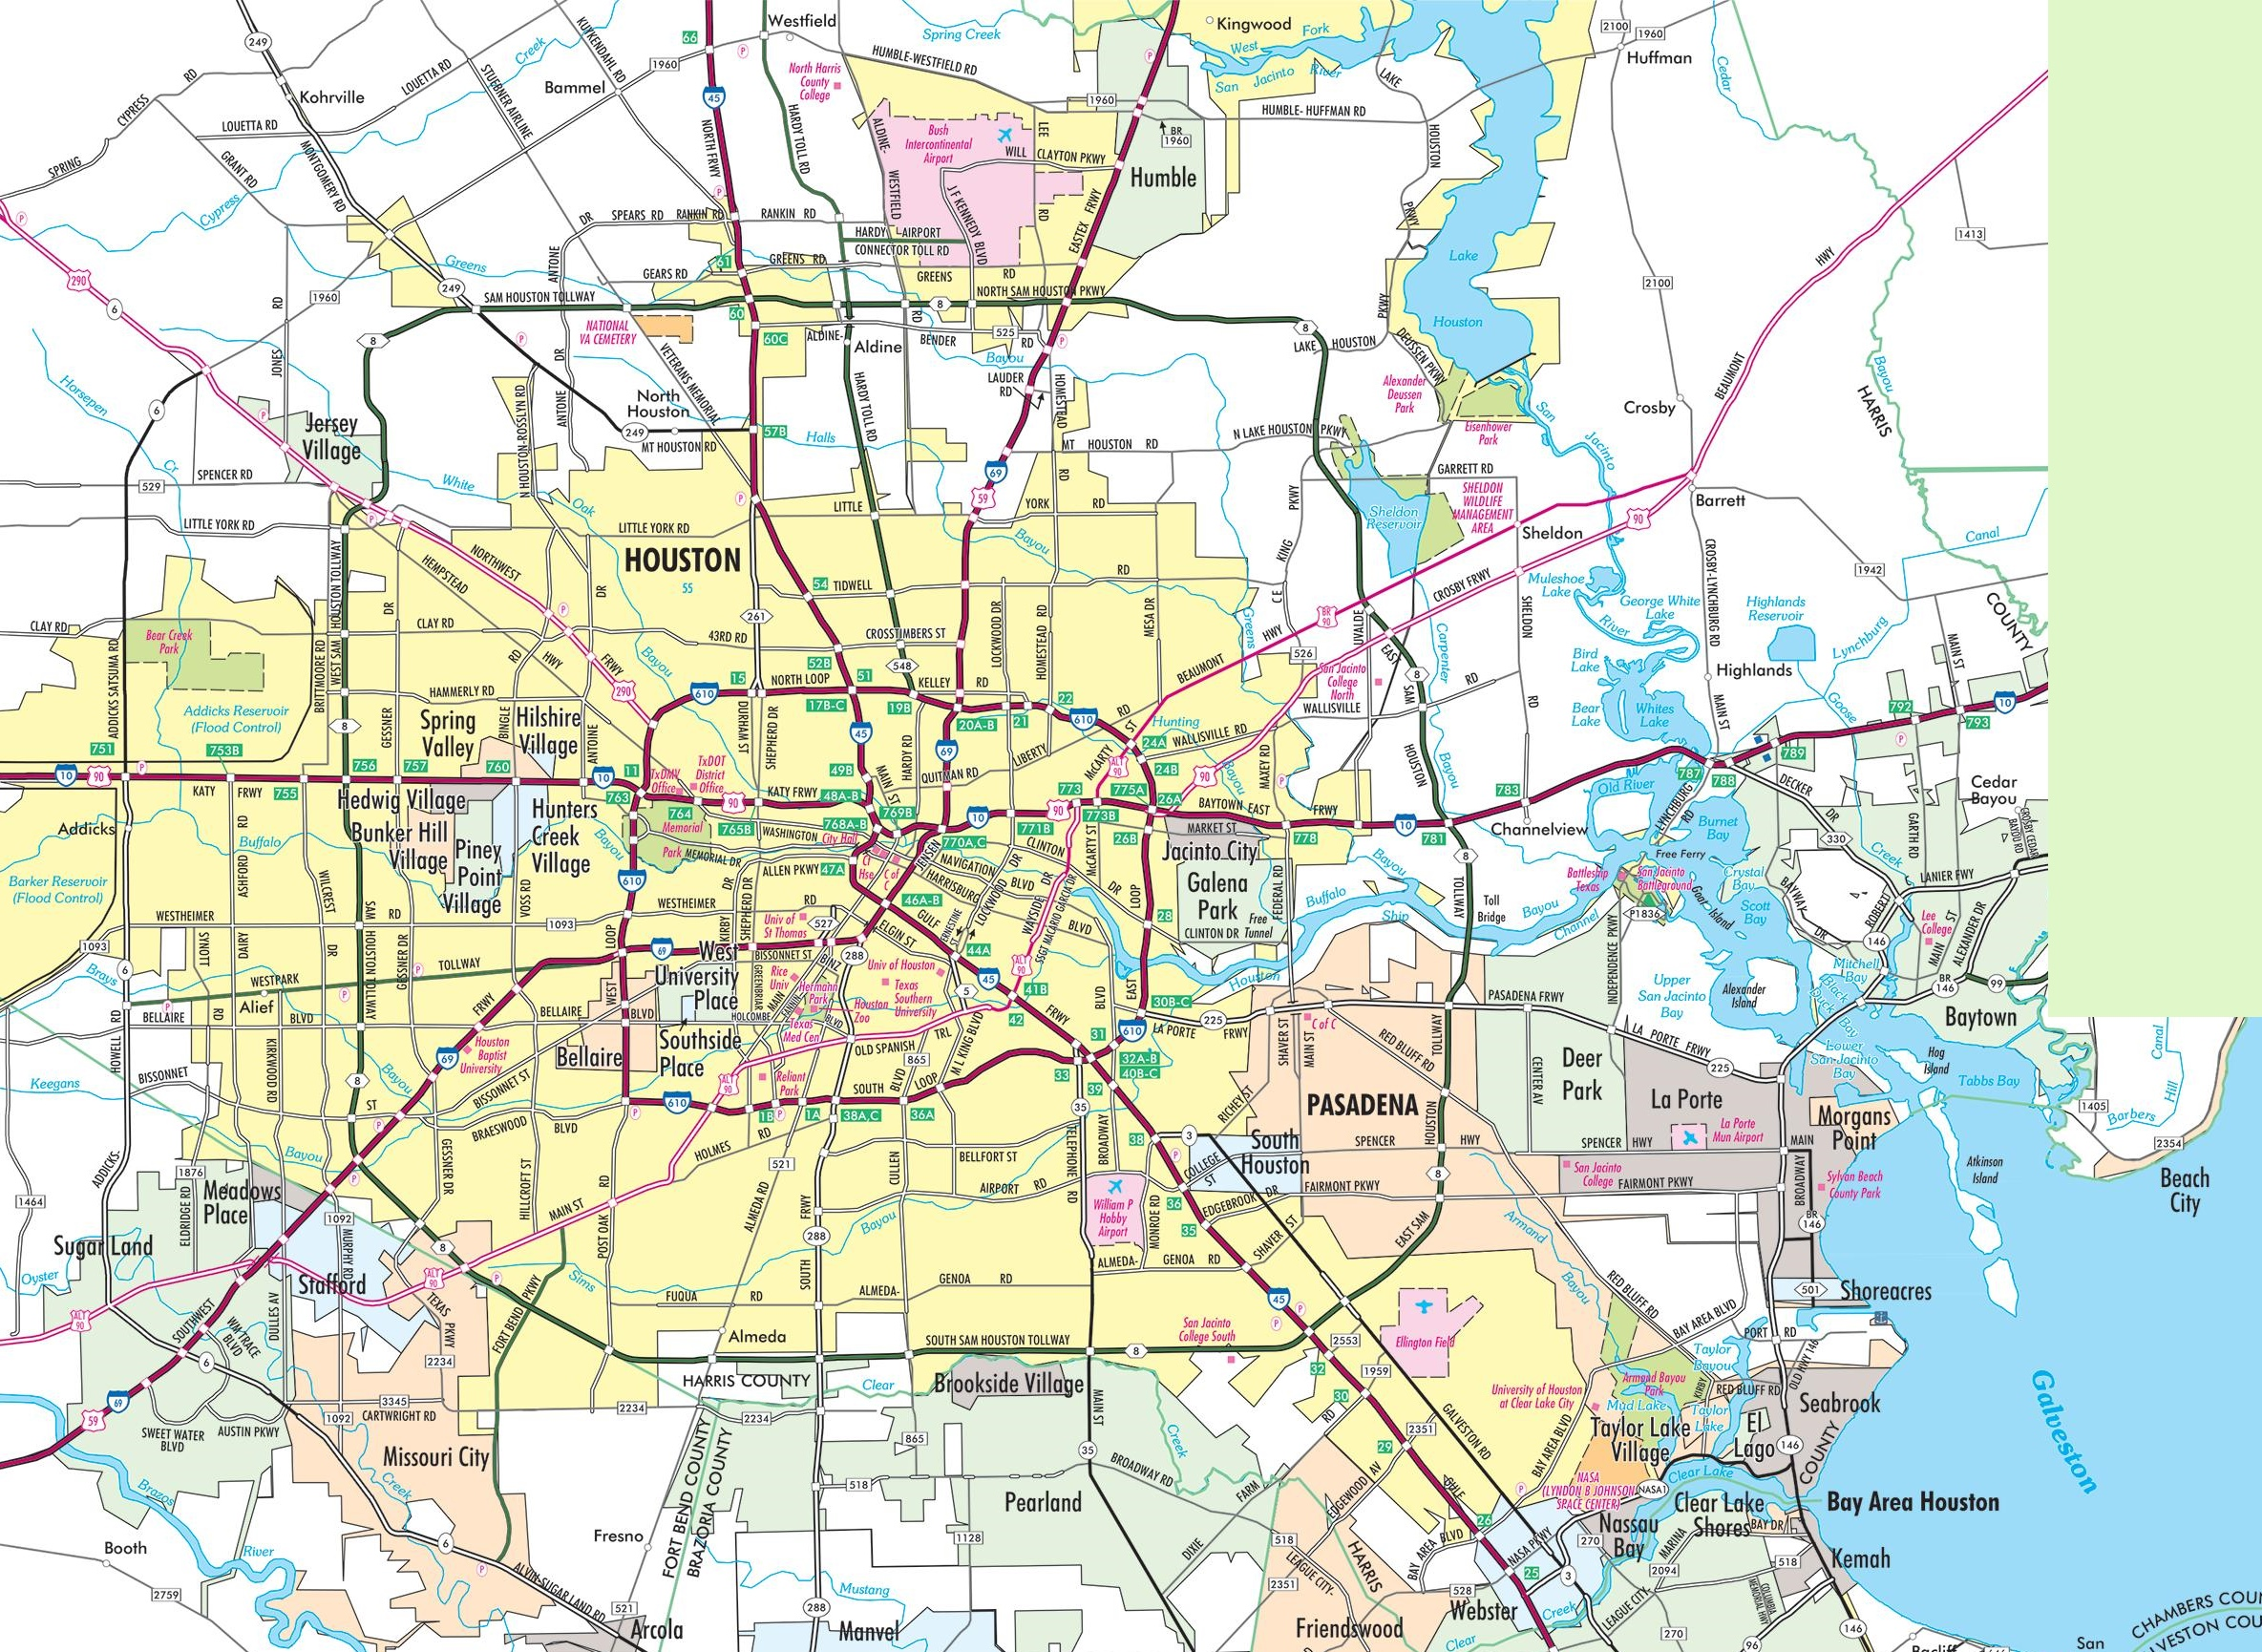 Houston Maps Texas US Maps Of Houston - Houston texas on us map